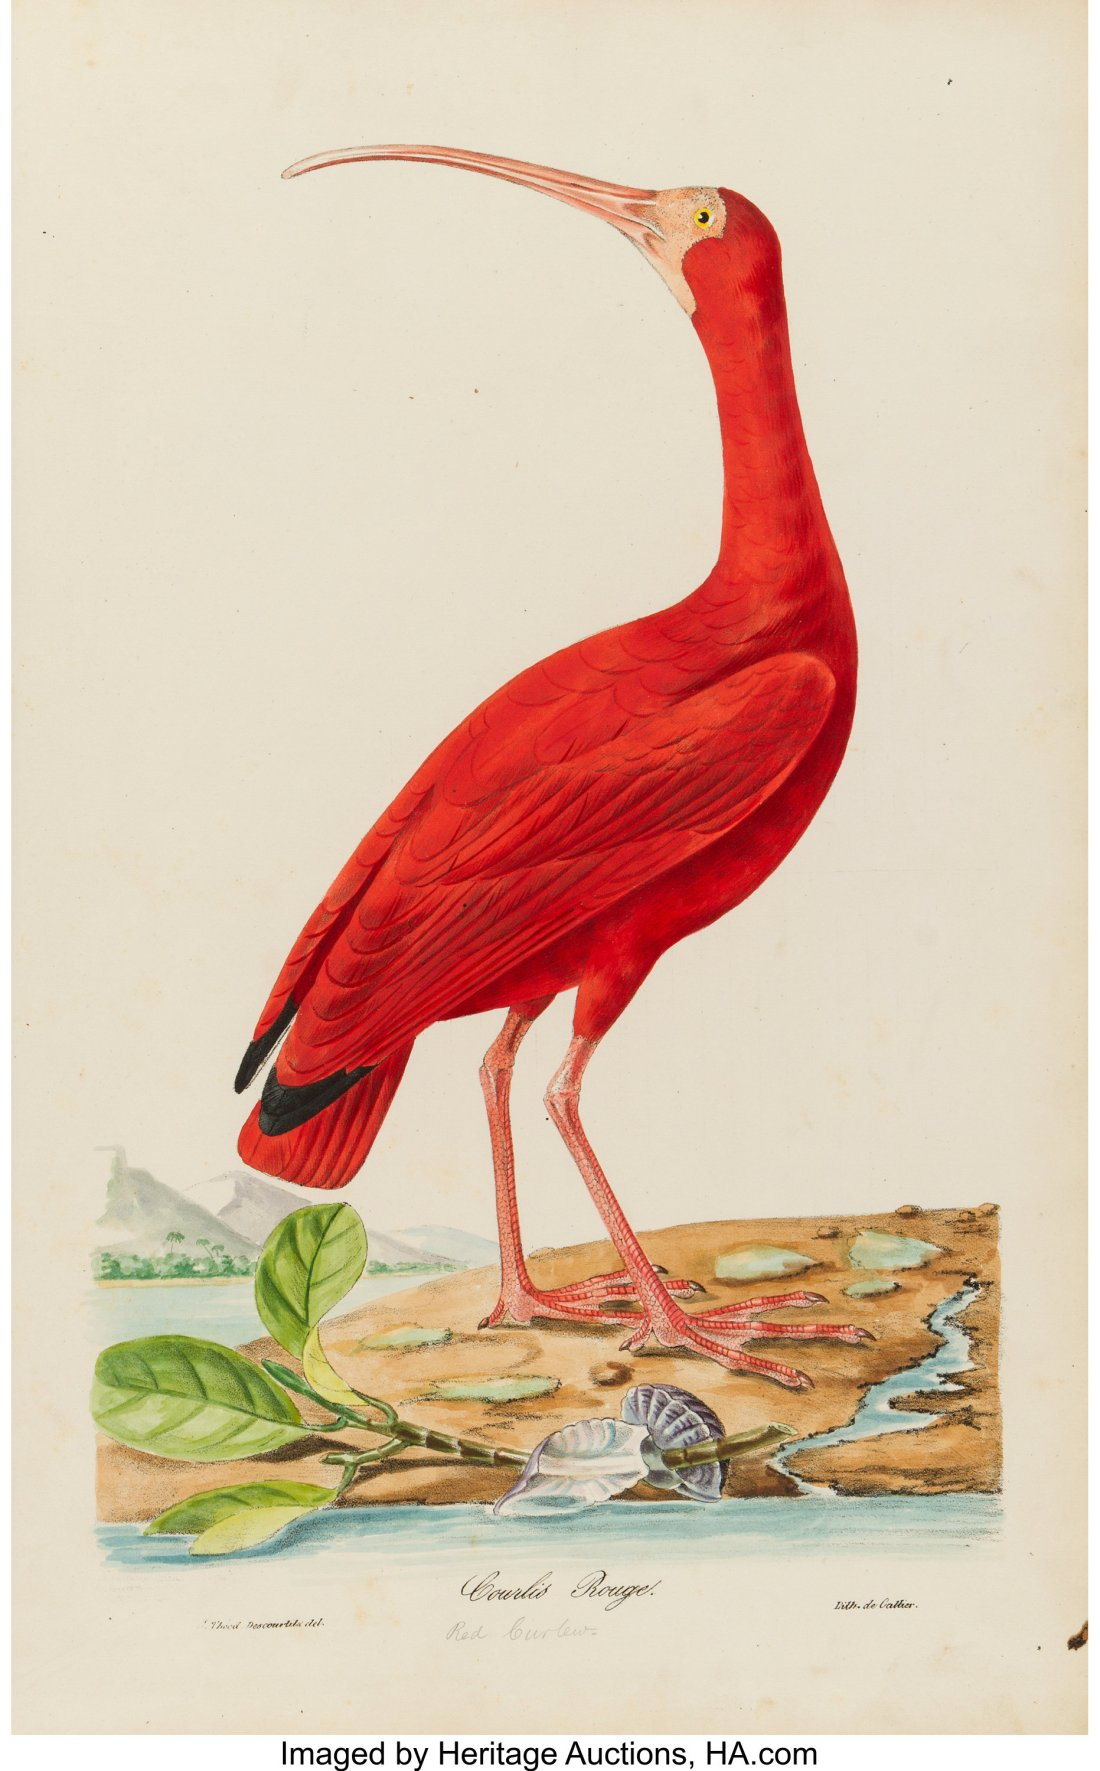 A Rare Bird! Heritage Auctions Could Sell a Gorgeous and